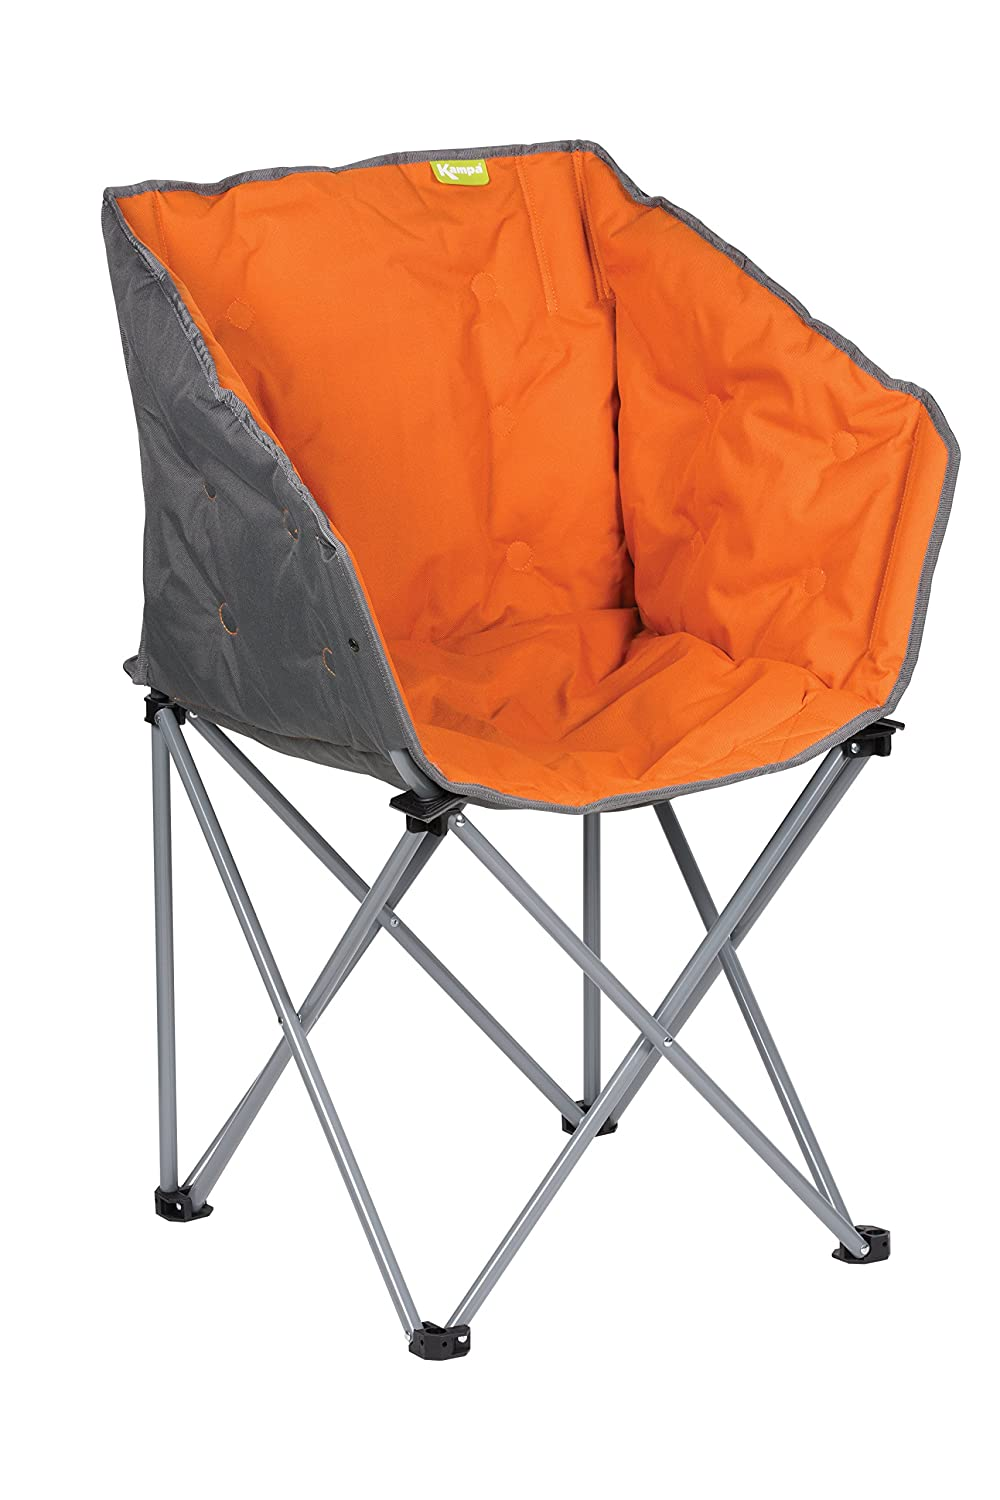 Kampa Tub Chair - Orange